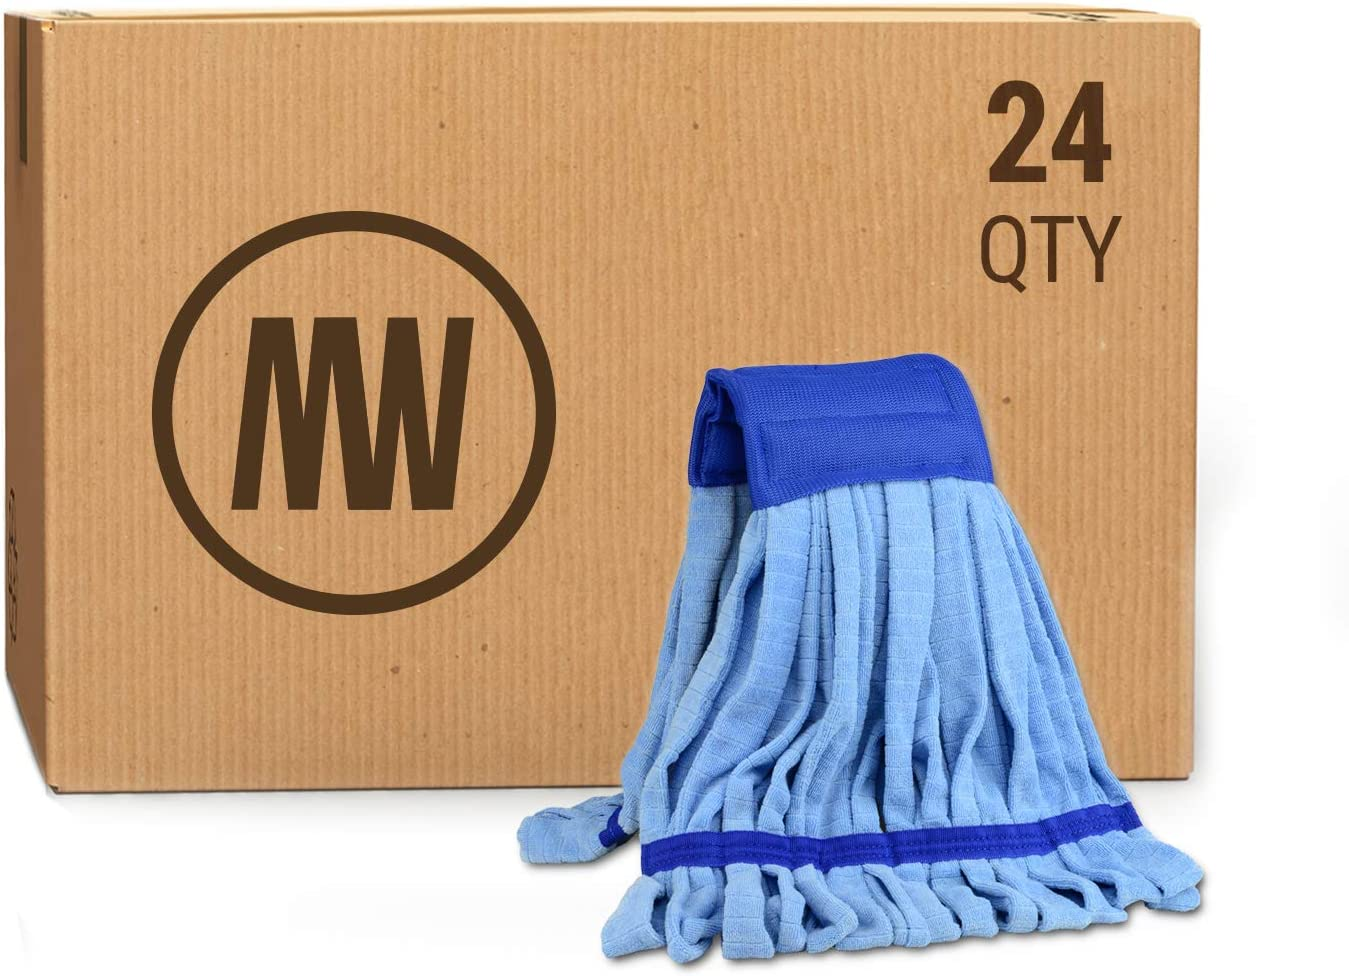 Medium Microfiber Tube Mop Head 14 Oz More Light Weight Than Conventional Cotton String Mops For Commercial And Industrial Use Blue 24 Kitchen Dining